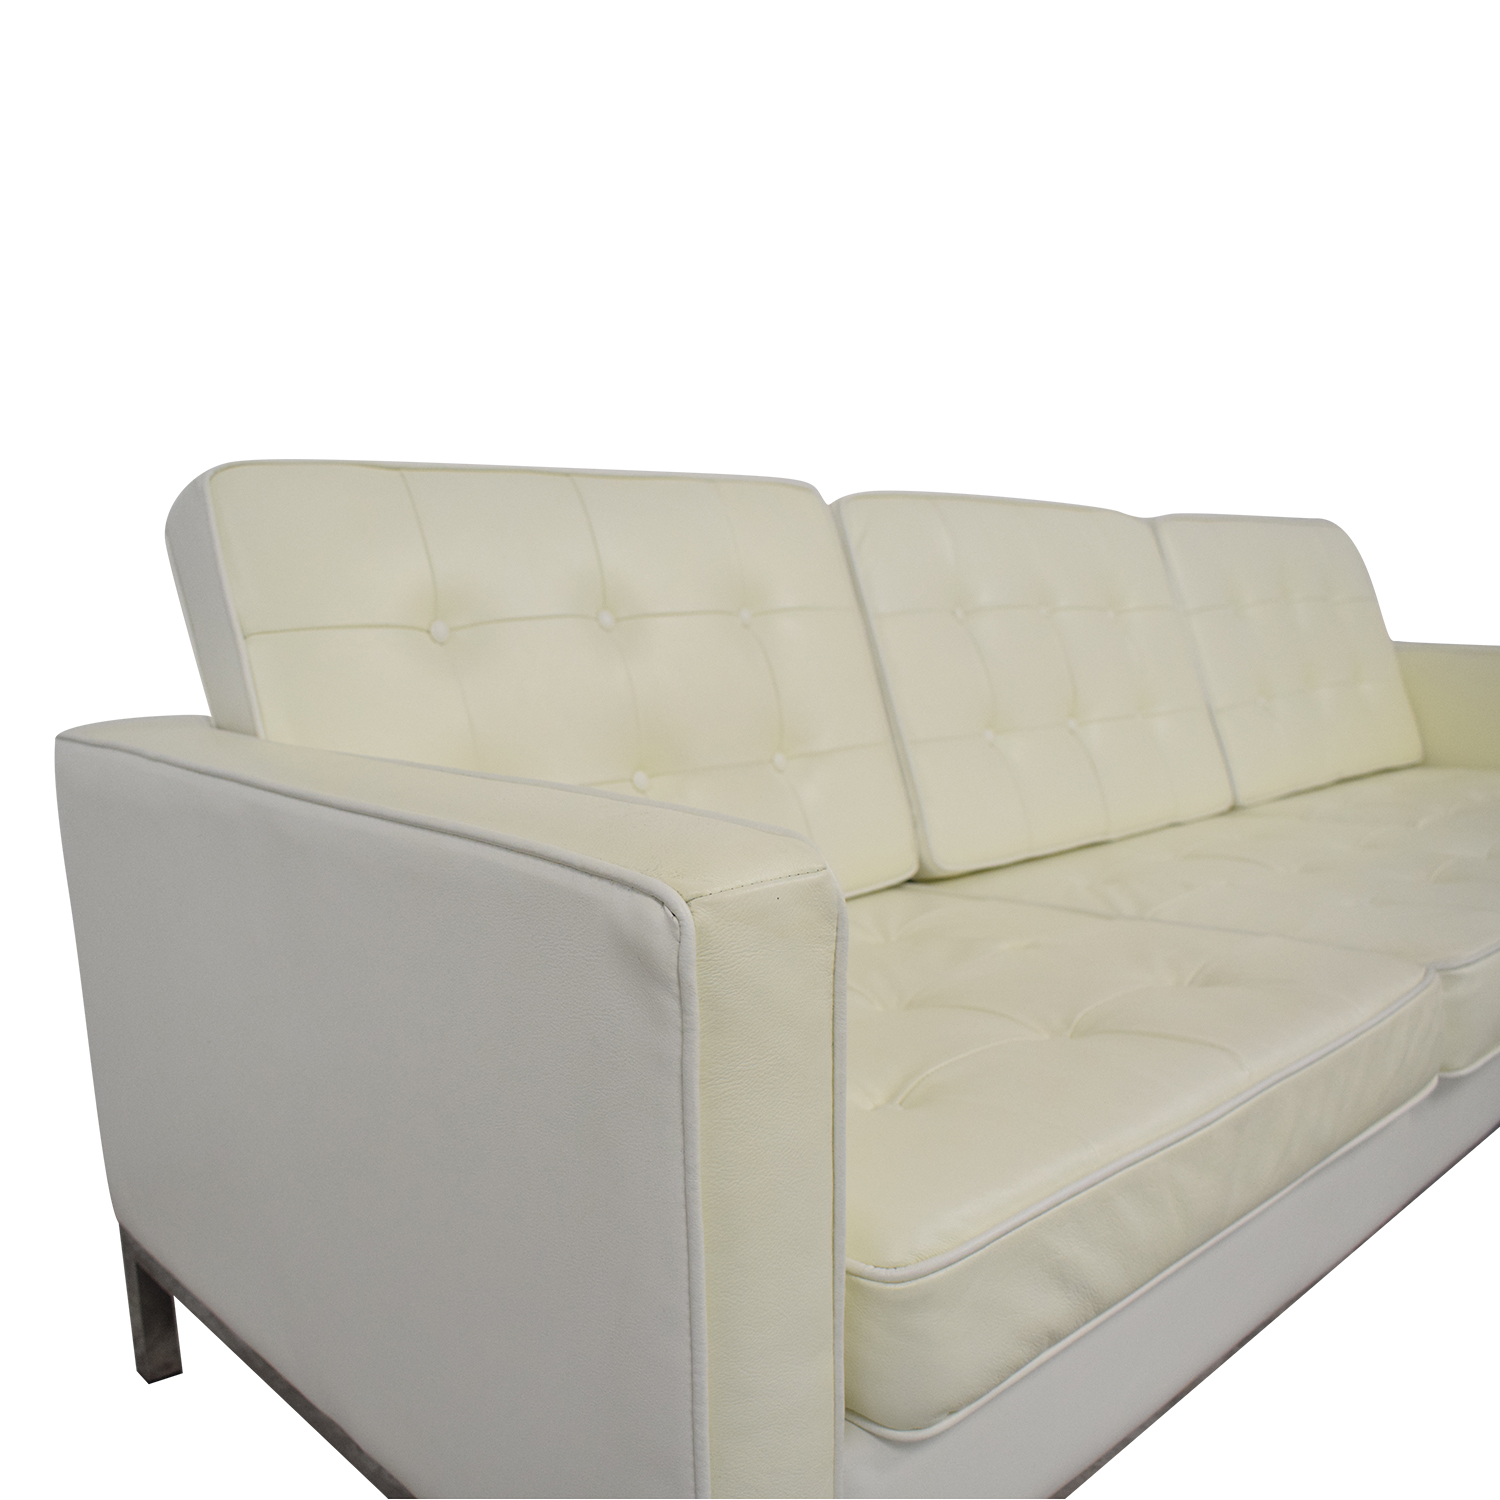 buy Modway Modway Mid Century Modern Sofa online